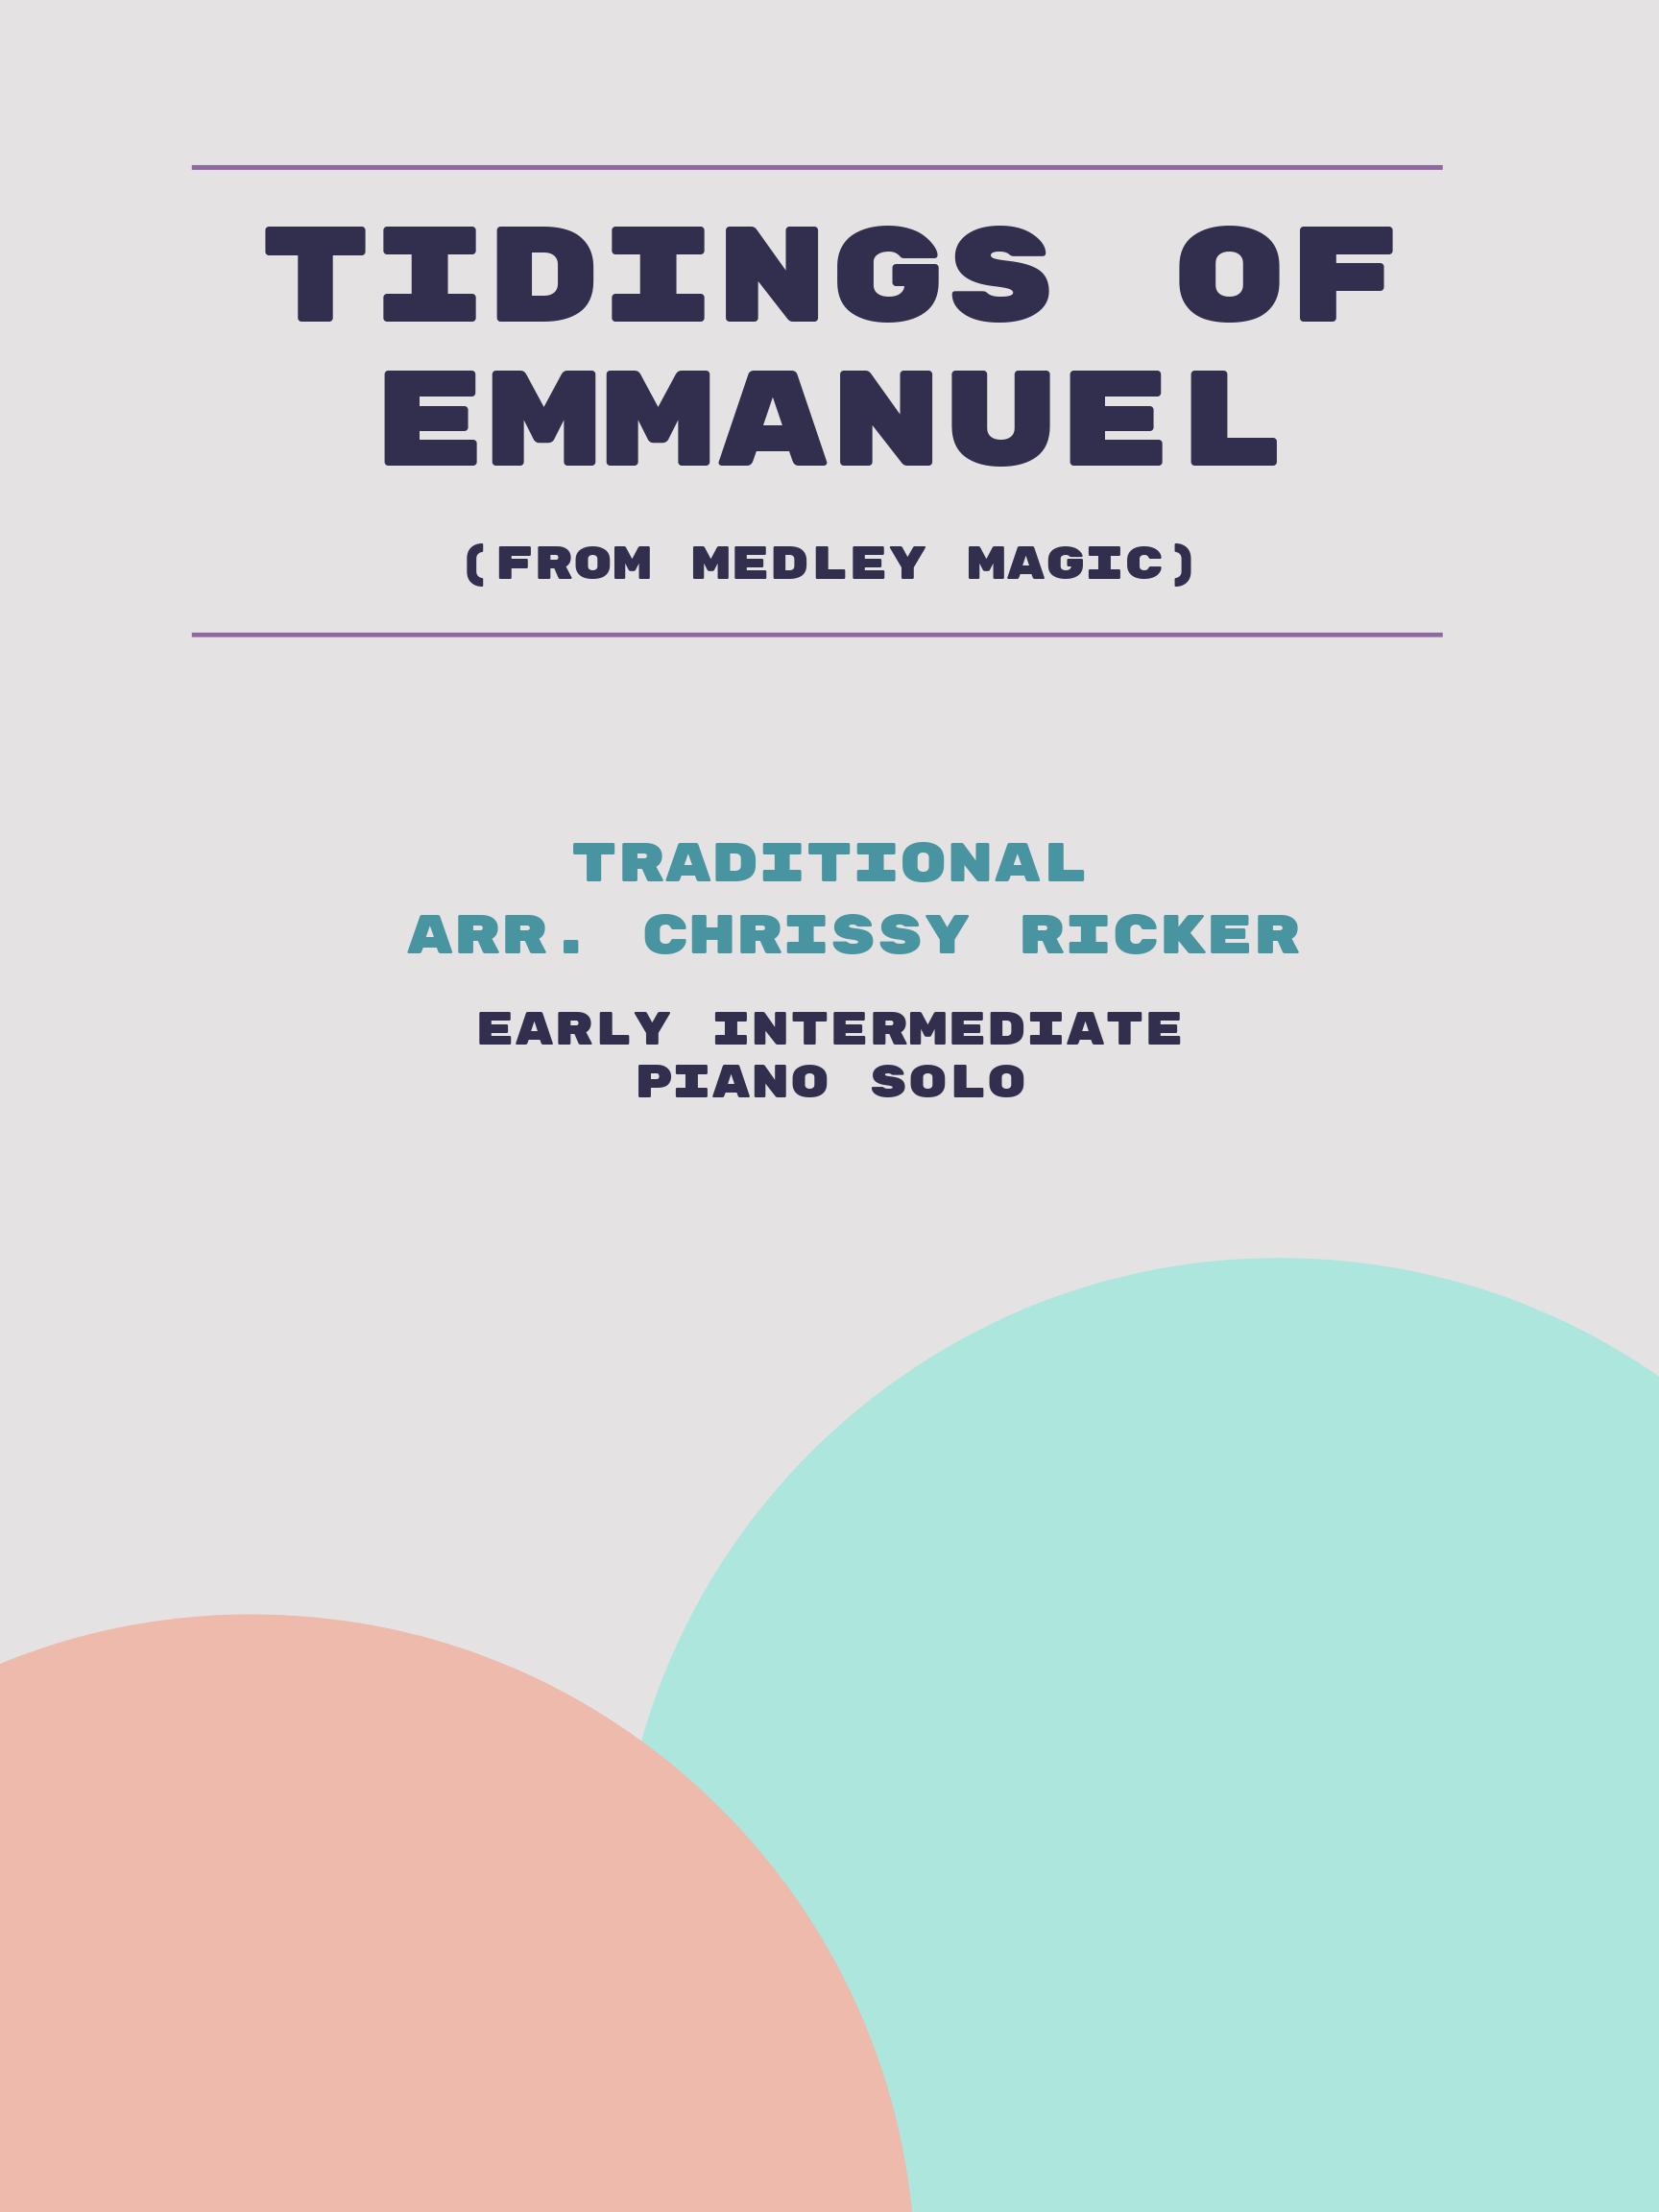 Tidings of Emmanuel by Traditional